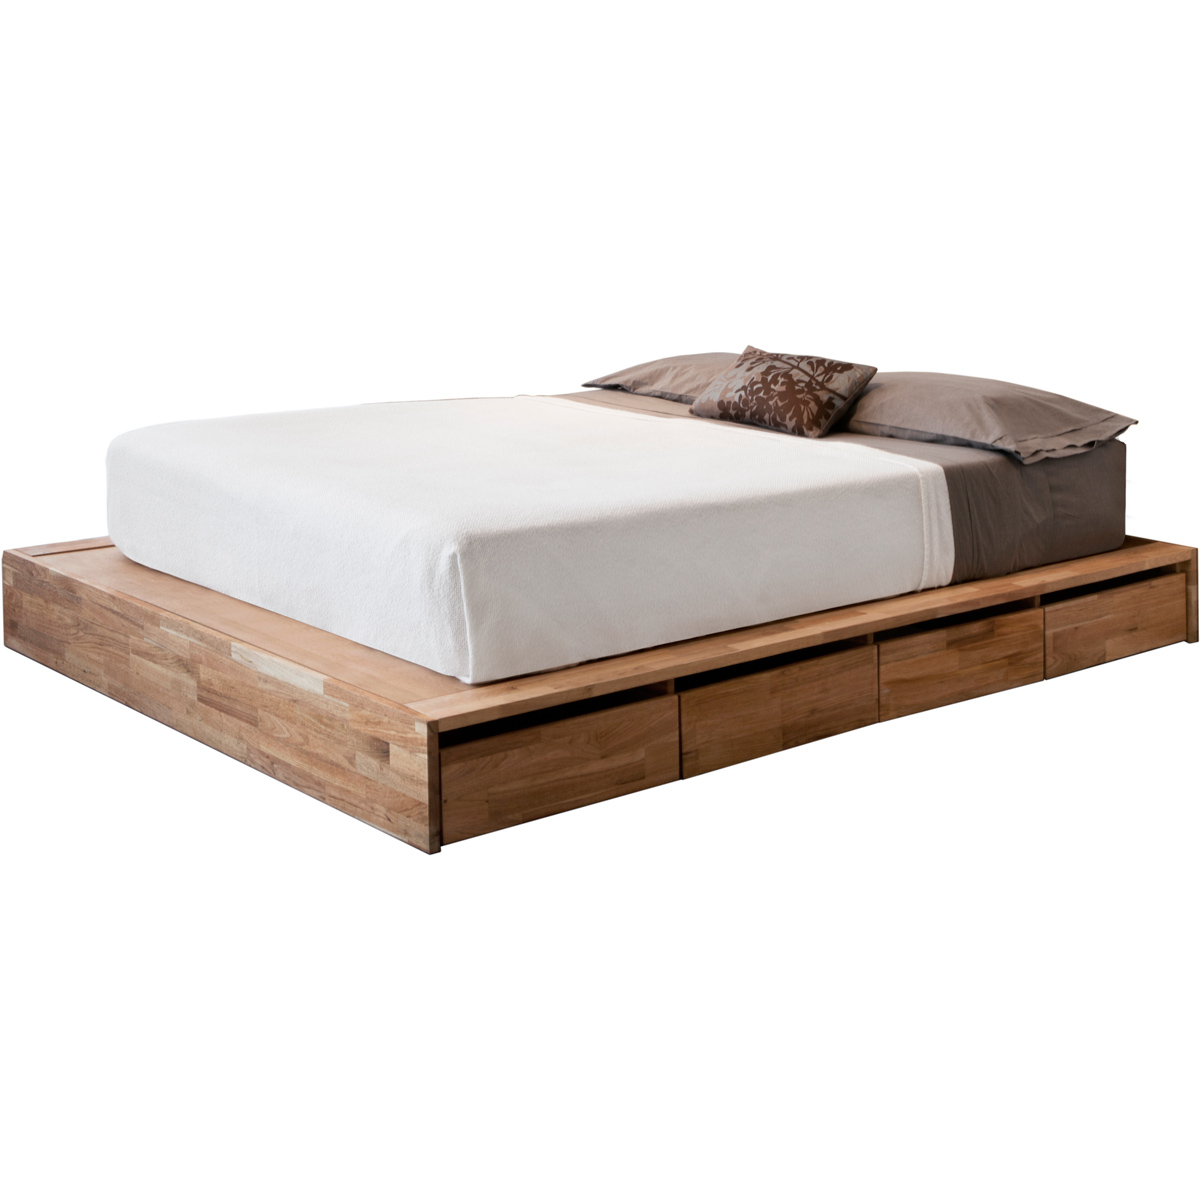 Mash Studio Lax Platform Bed W Storage Ikea Platform Bed